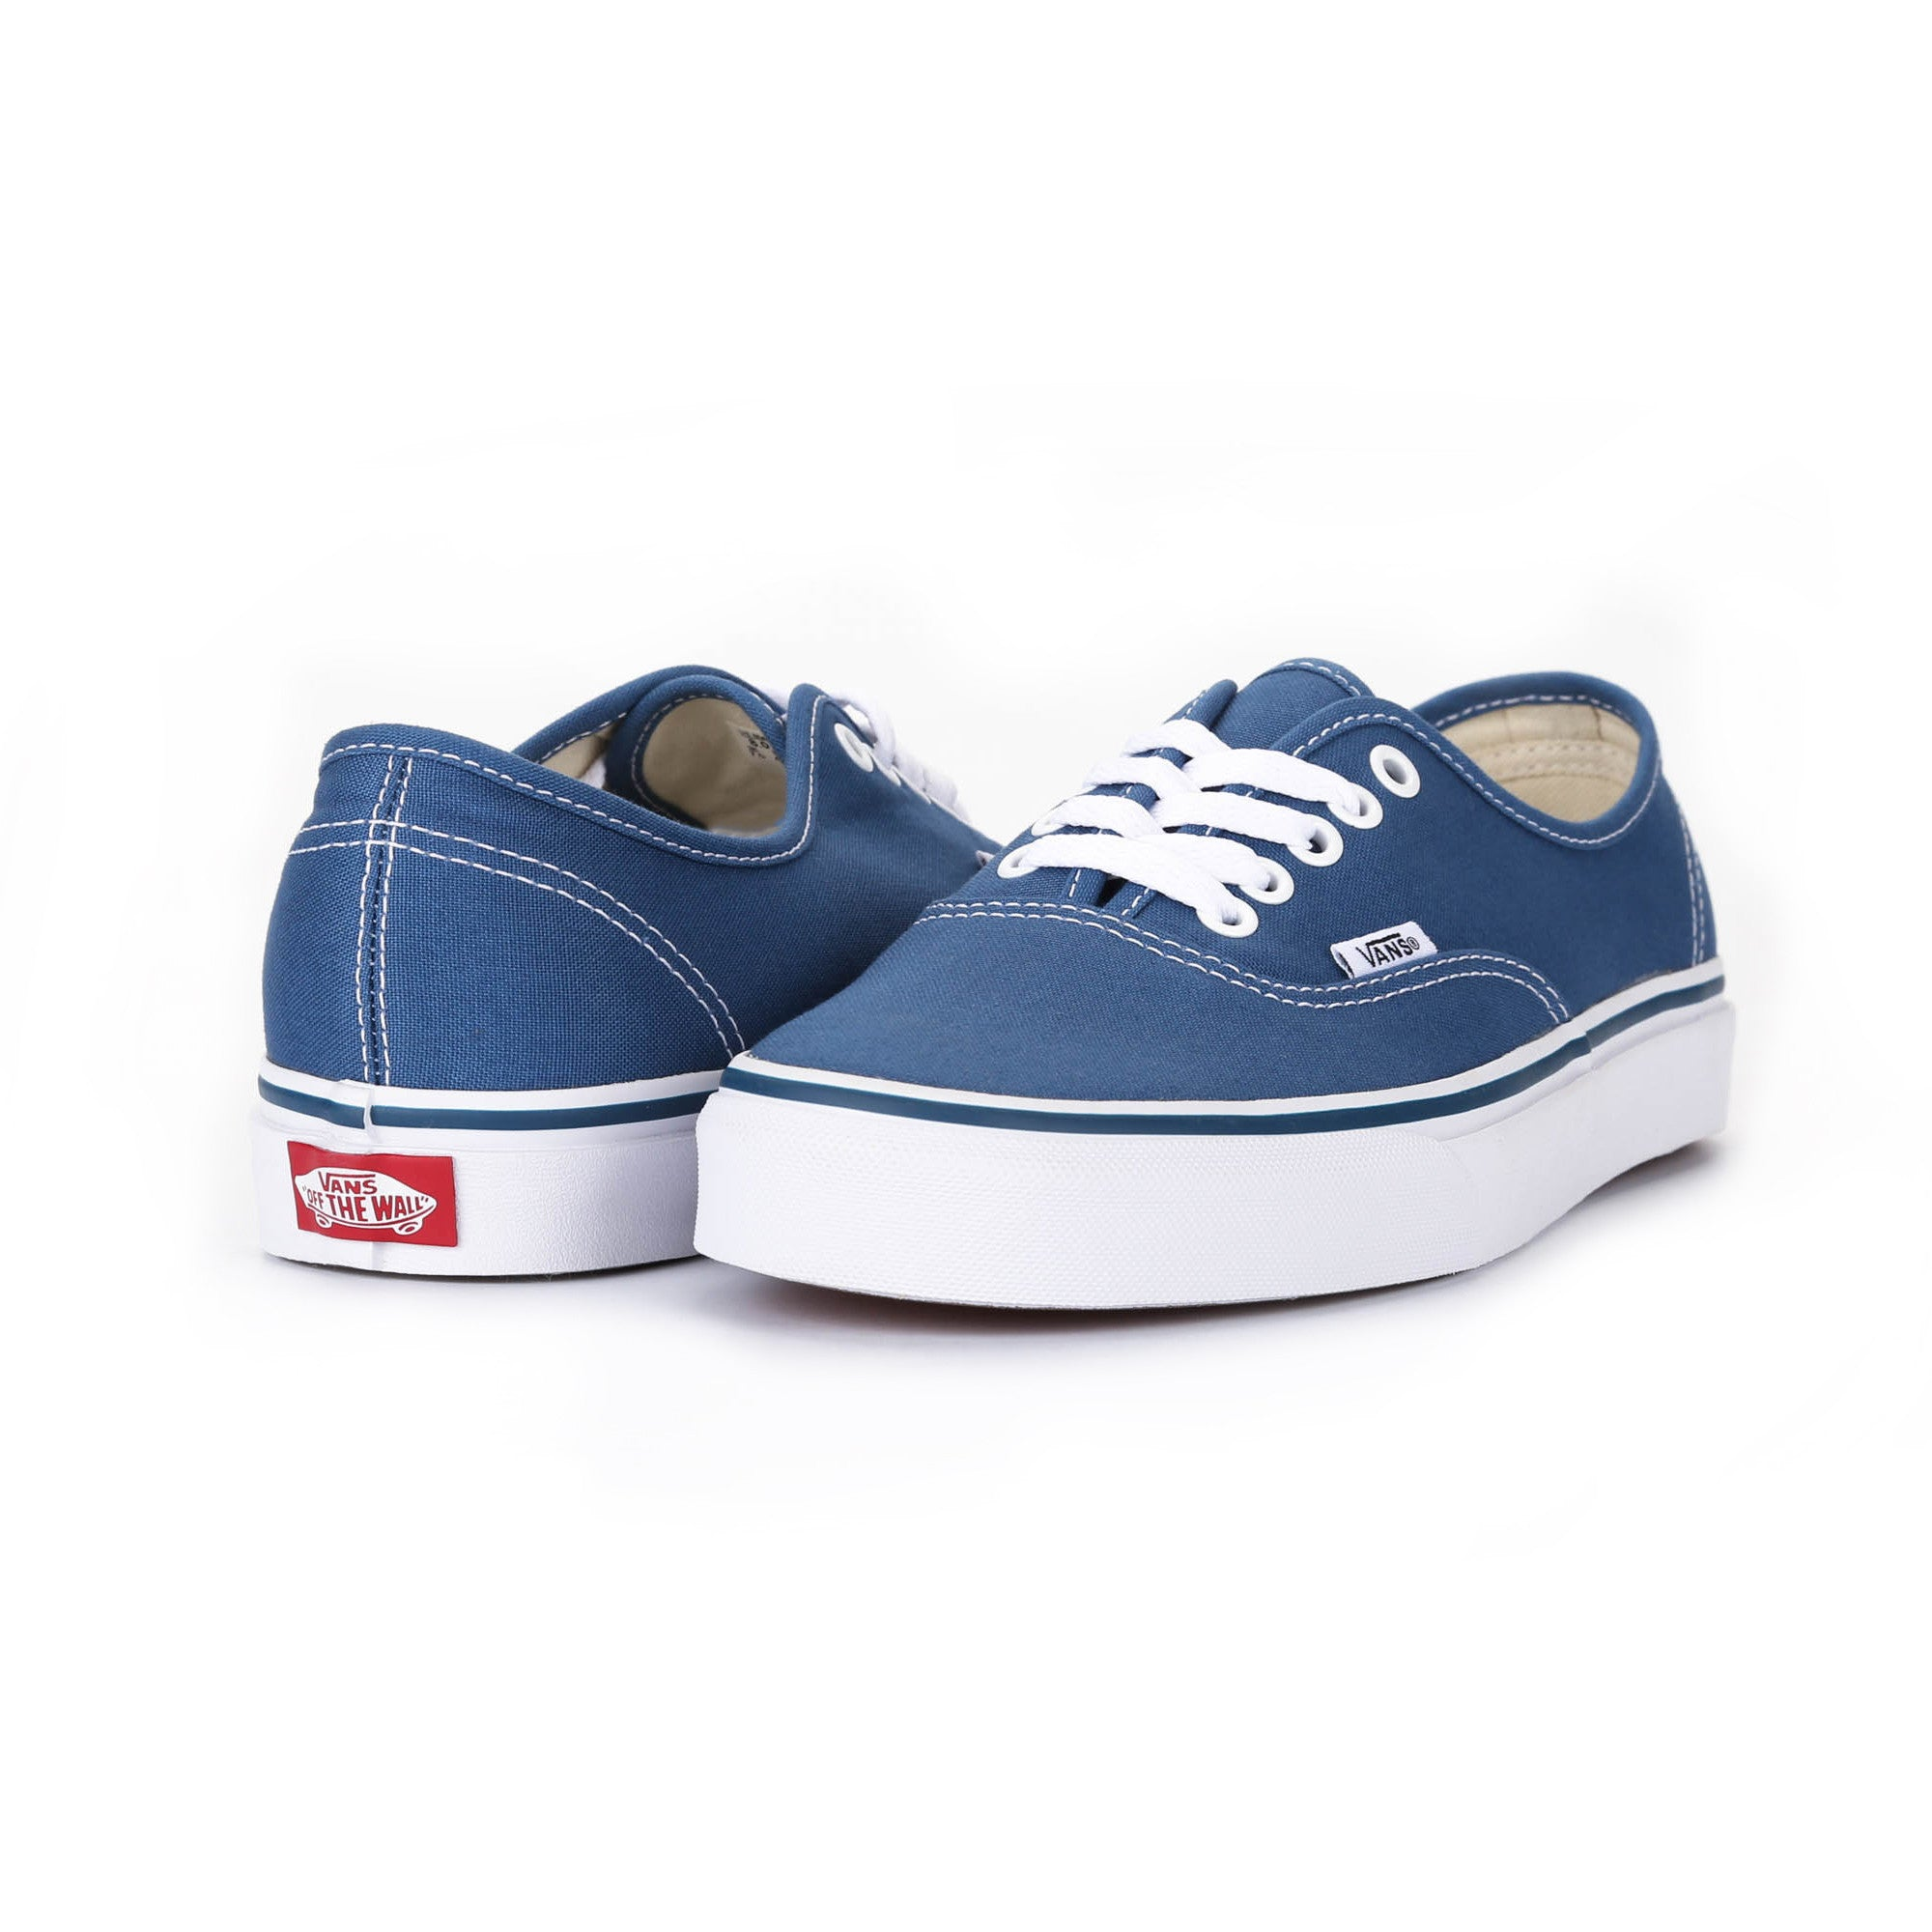 2b920ac3c444 Vans Classic Authentic - Navy - New Star